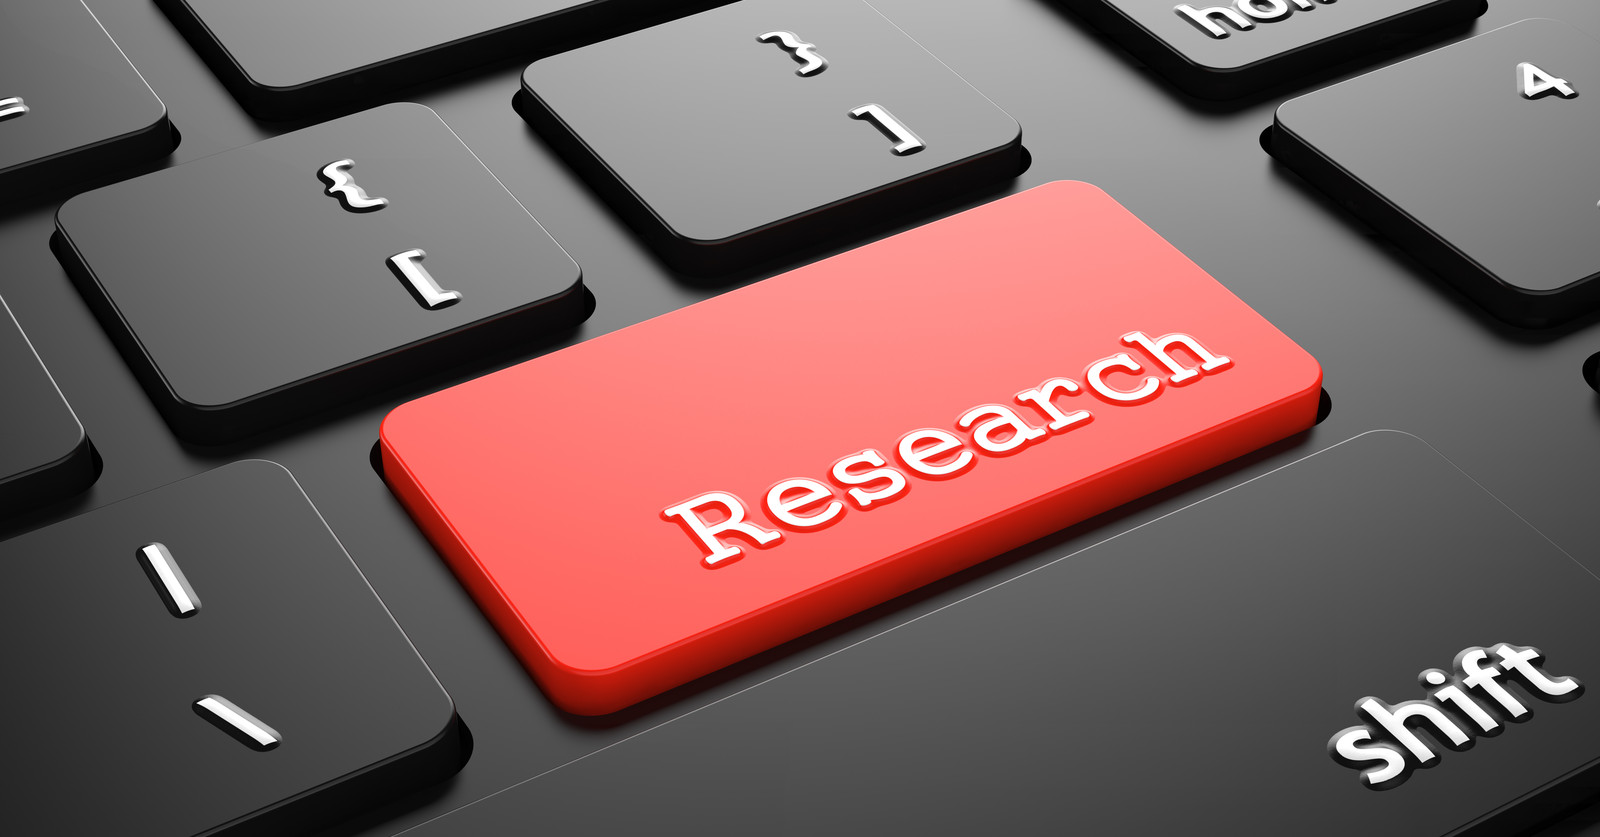 012 Researchkey Best Site To Get Free Researchs Imposing Research Papers How Download From Sciencedirect Full